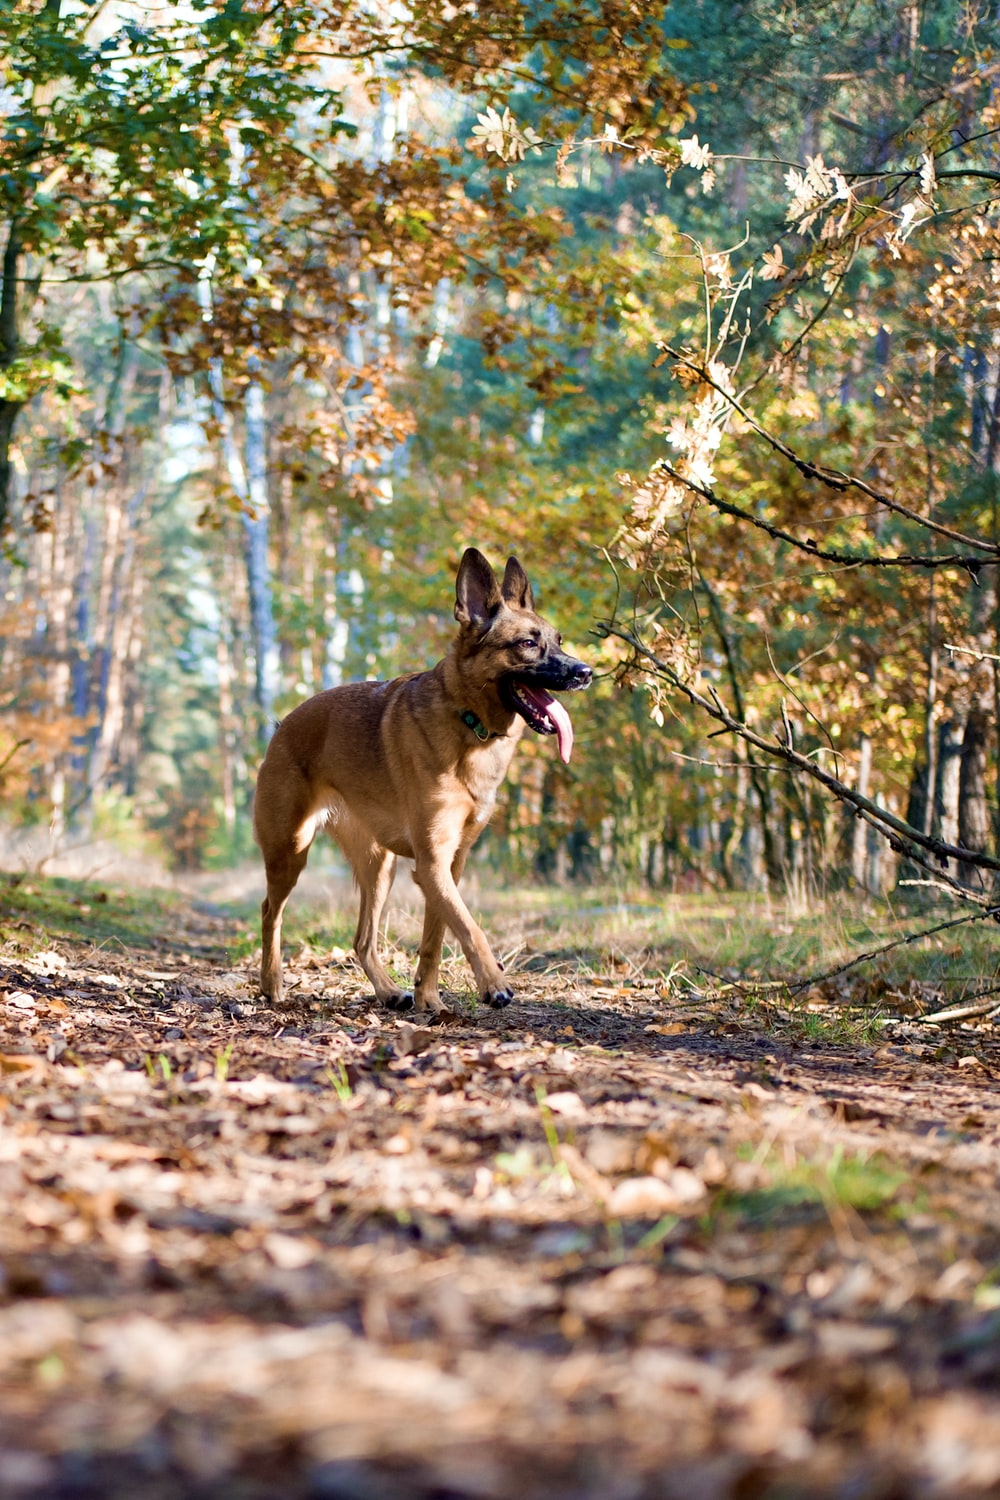 brown short coated dog on brown grass field during daytime